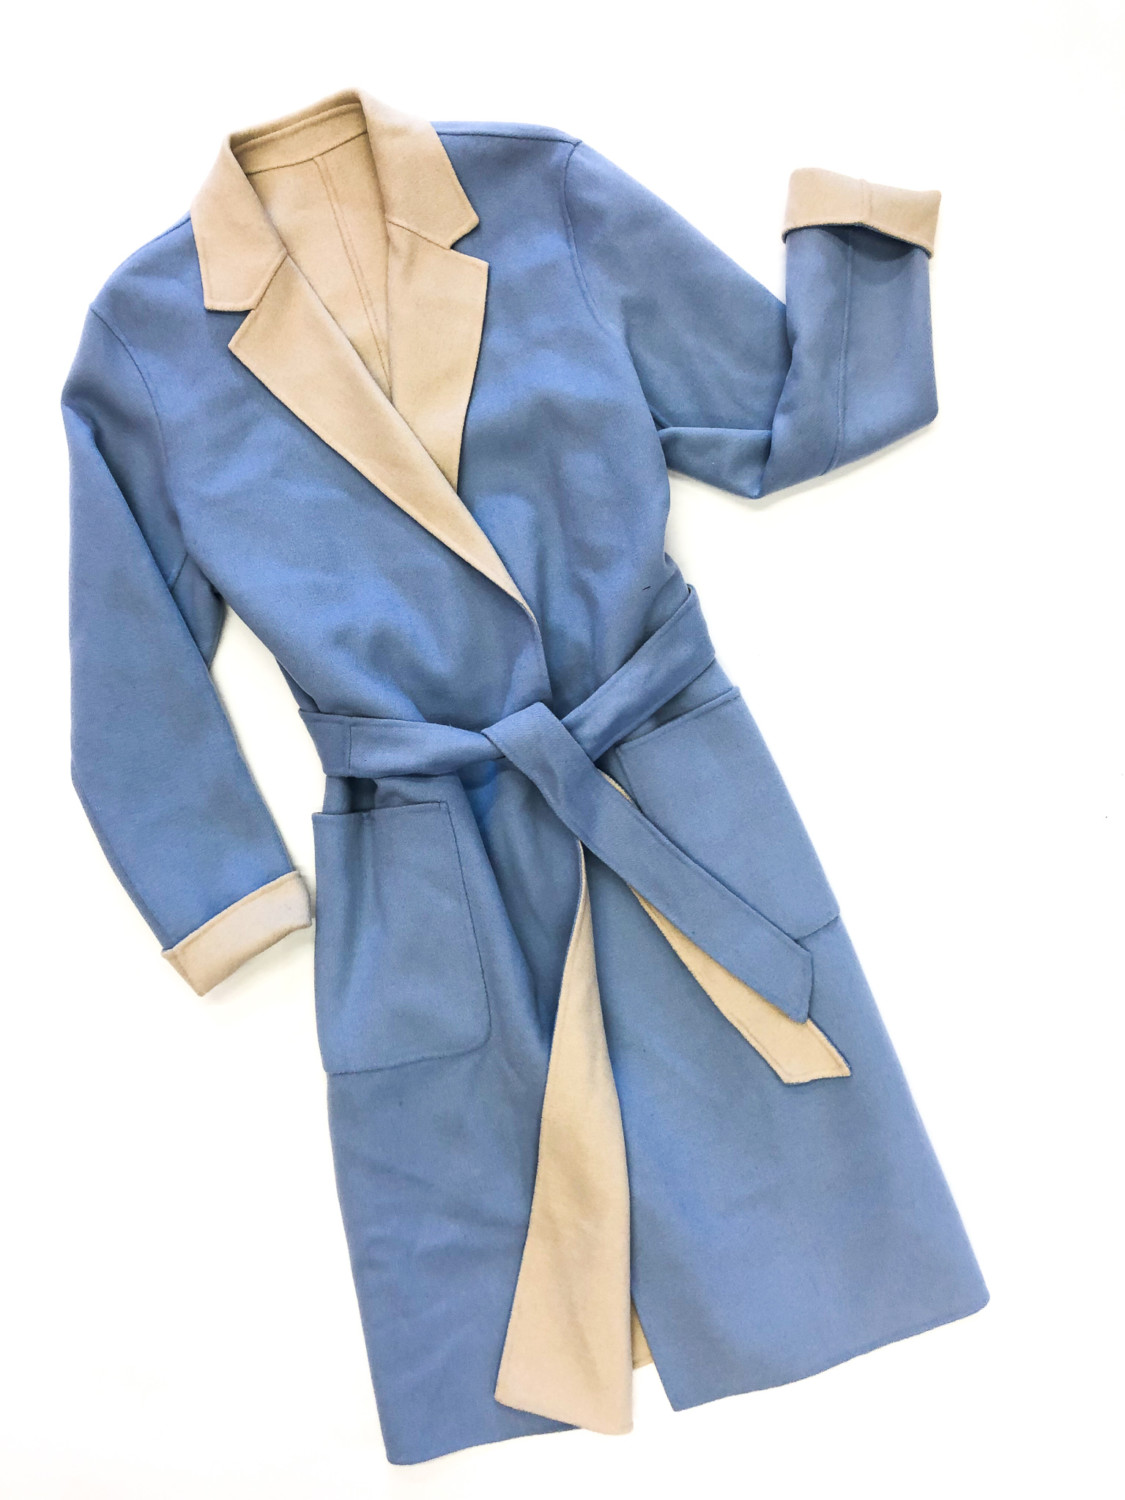 Weekend Max Mara Coat – Original Retail: $875, CWS: $250